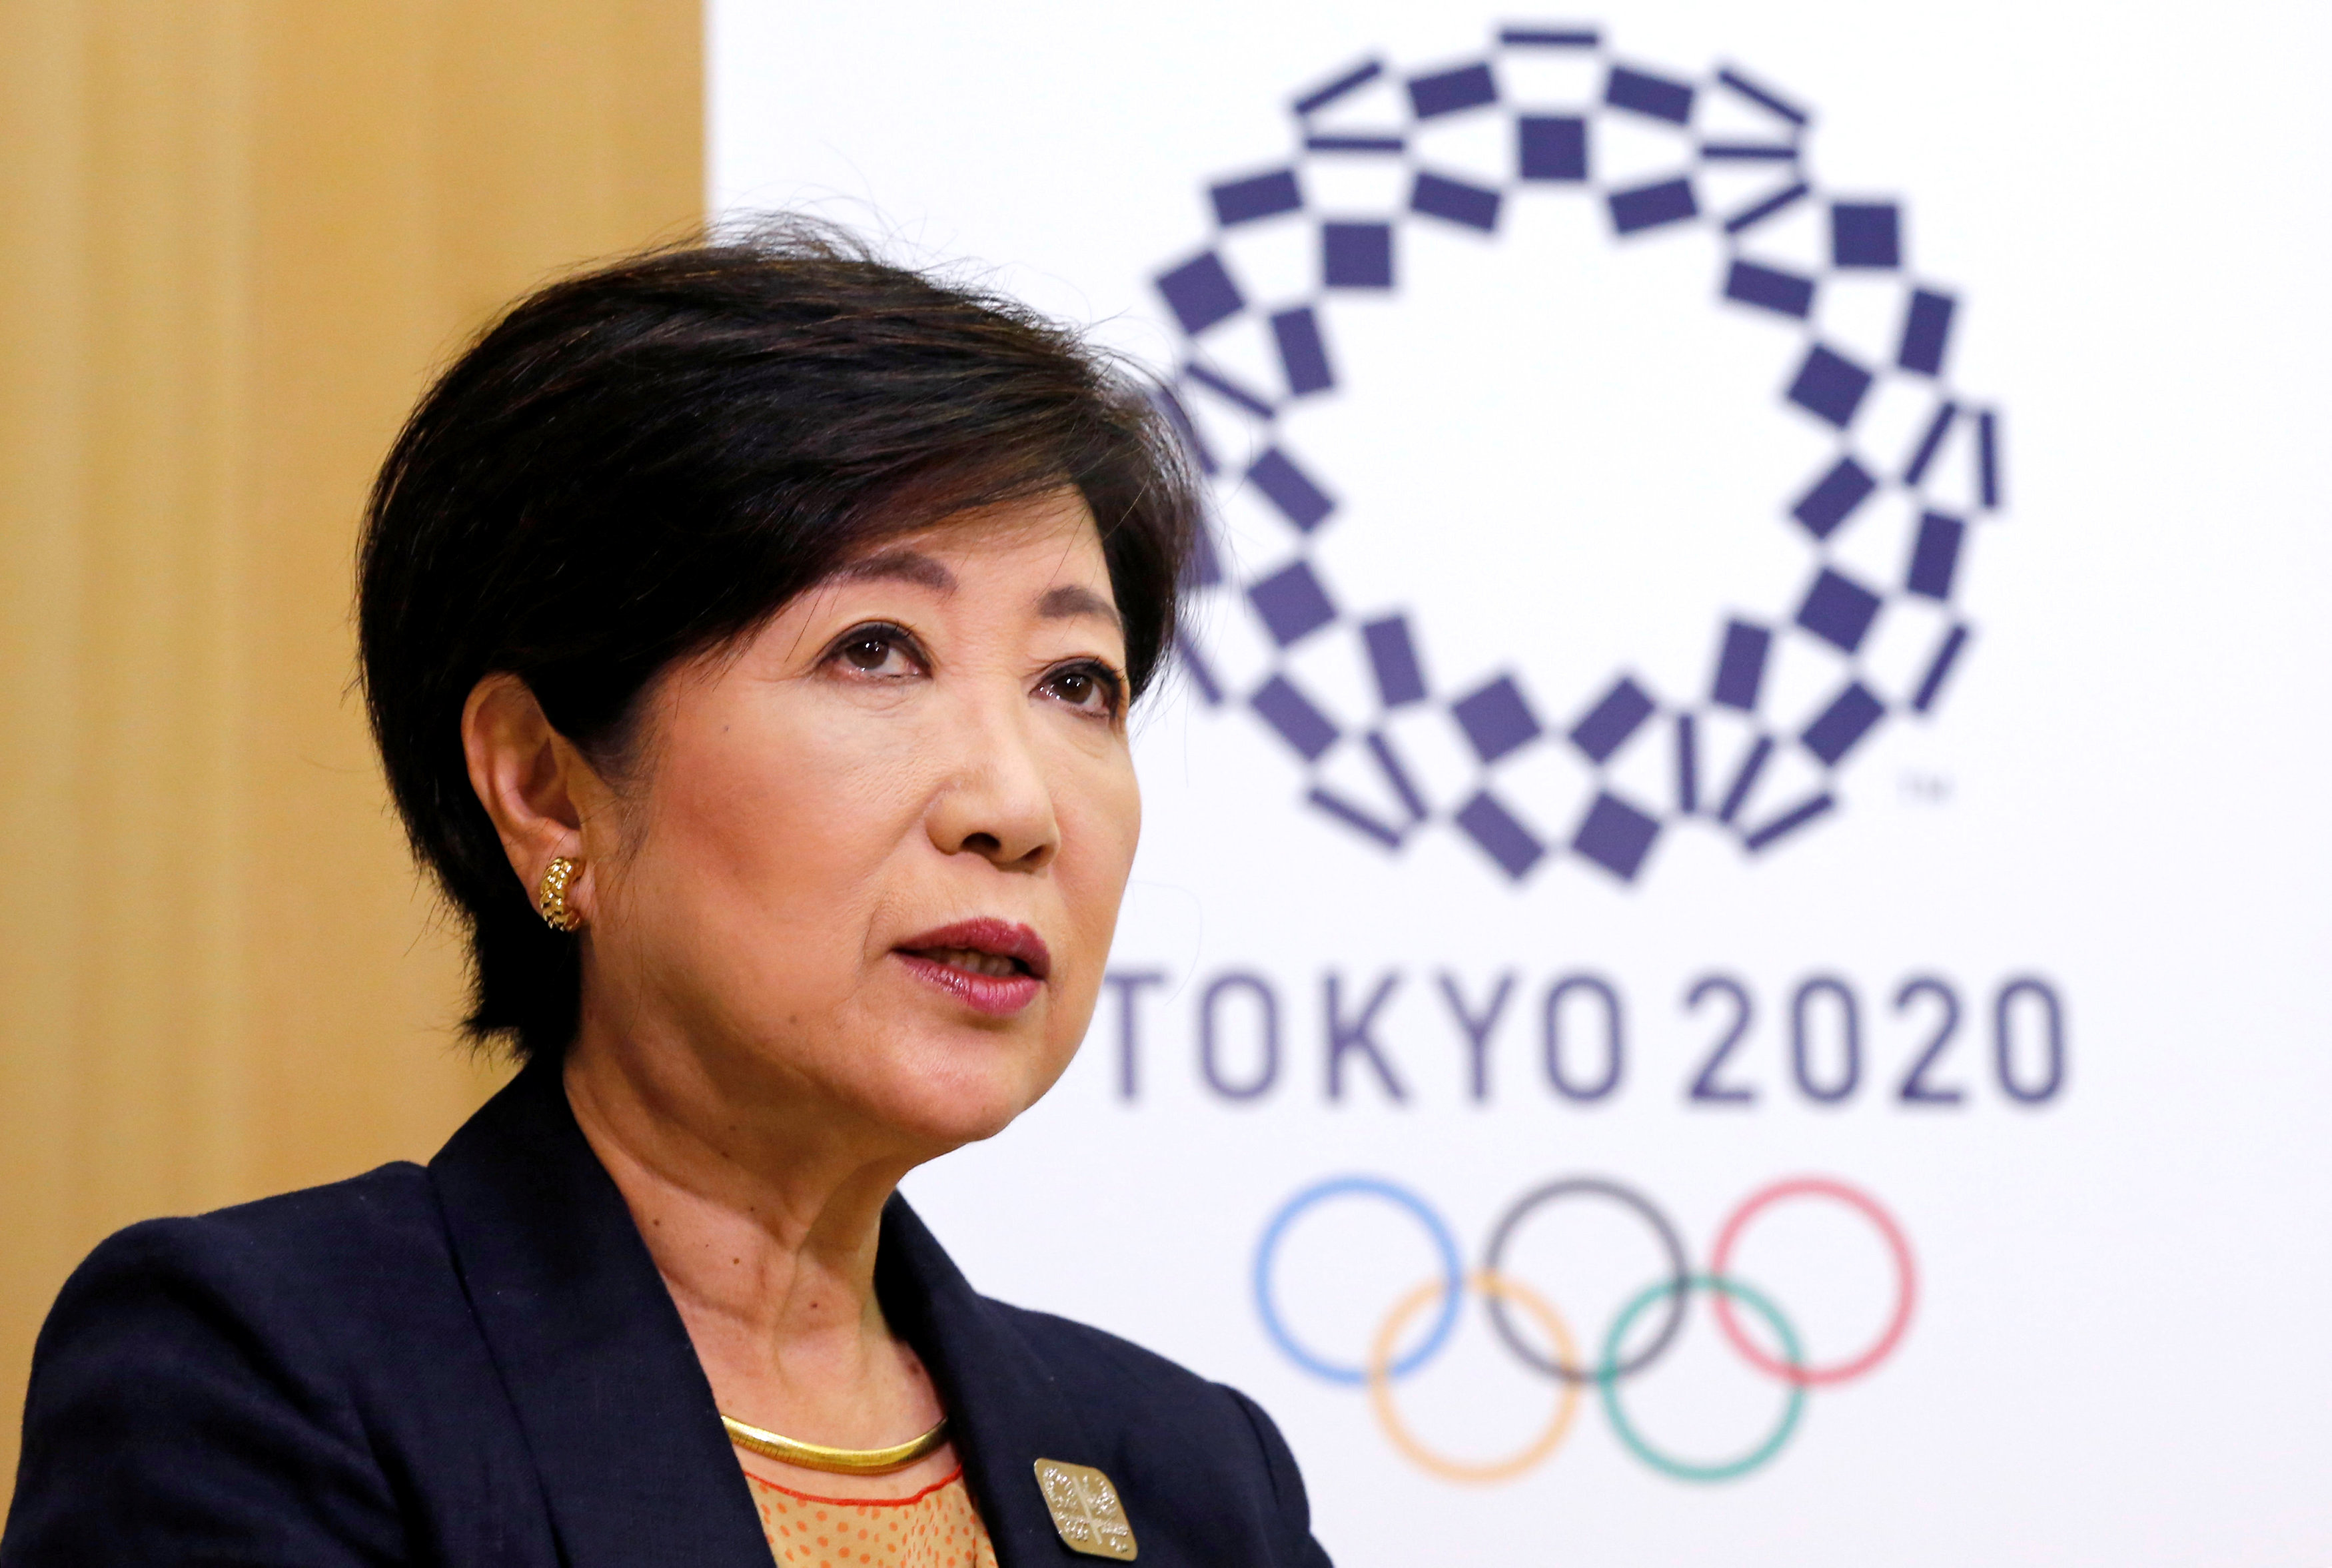 Politics is faster, more effective in Tokyo, says new governor